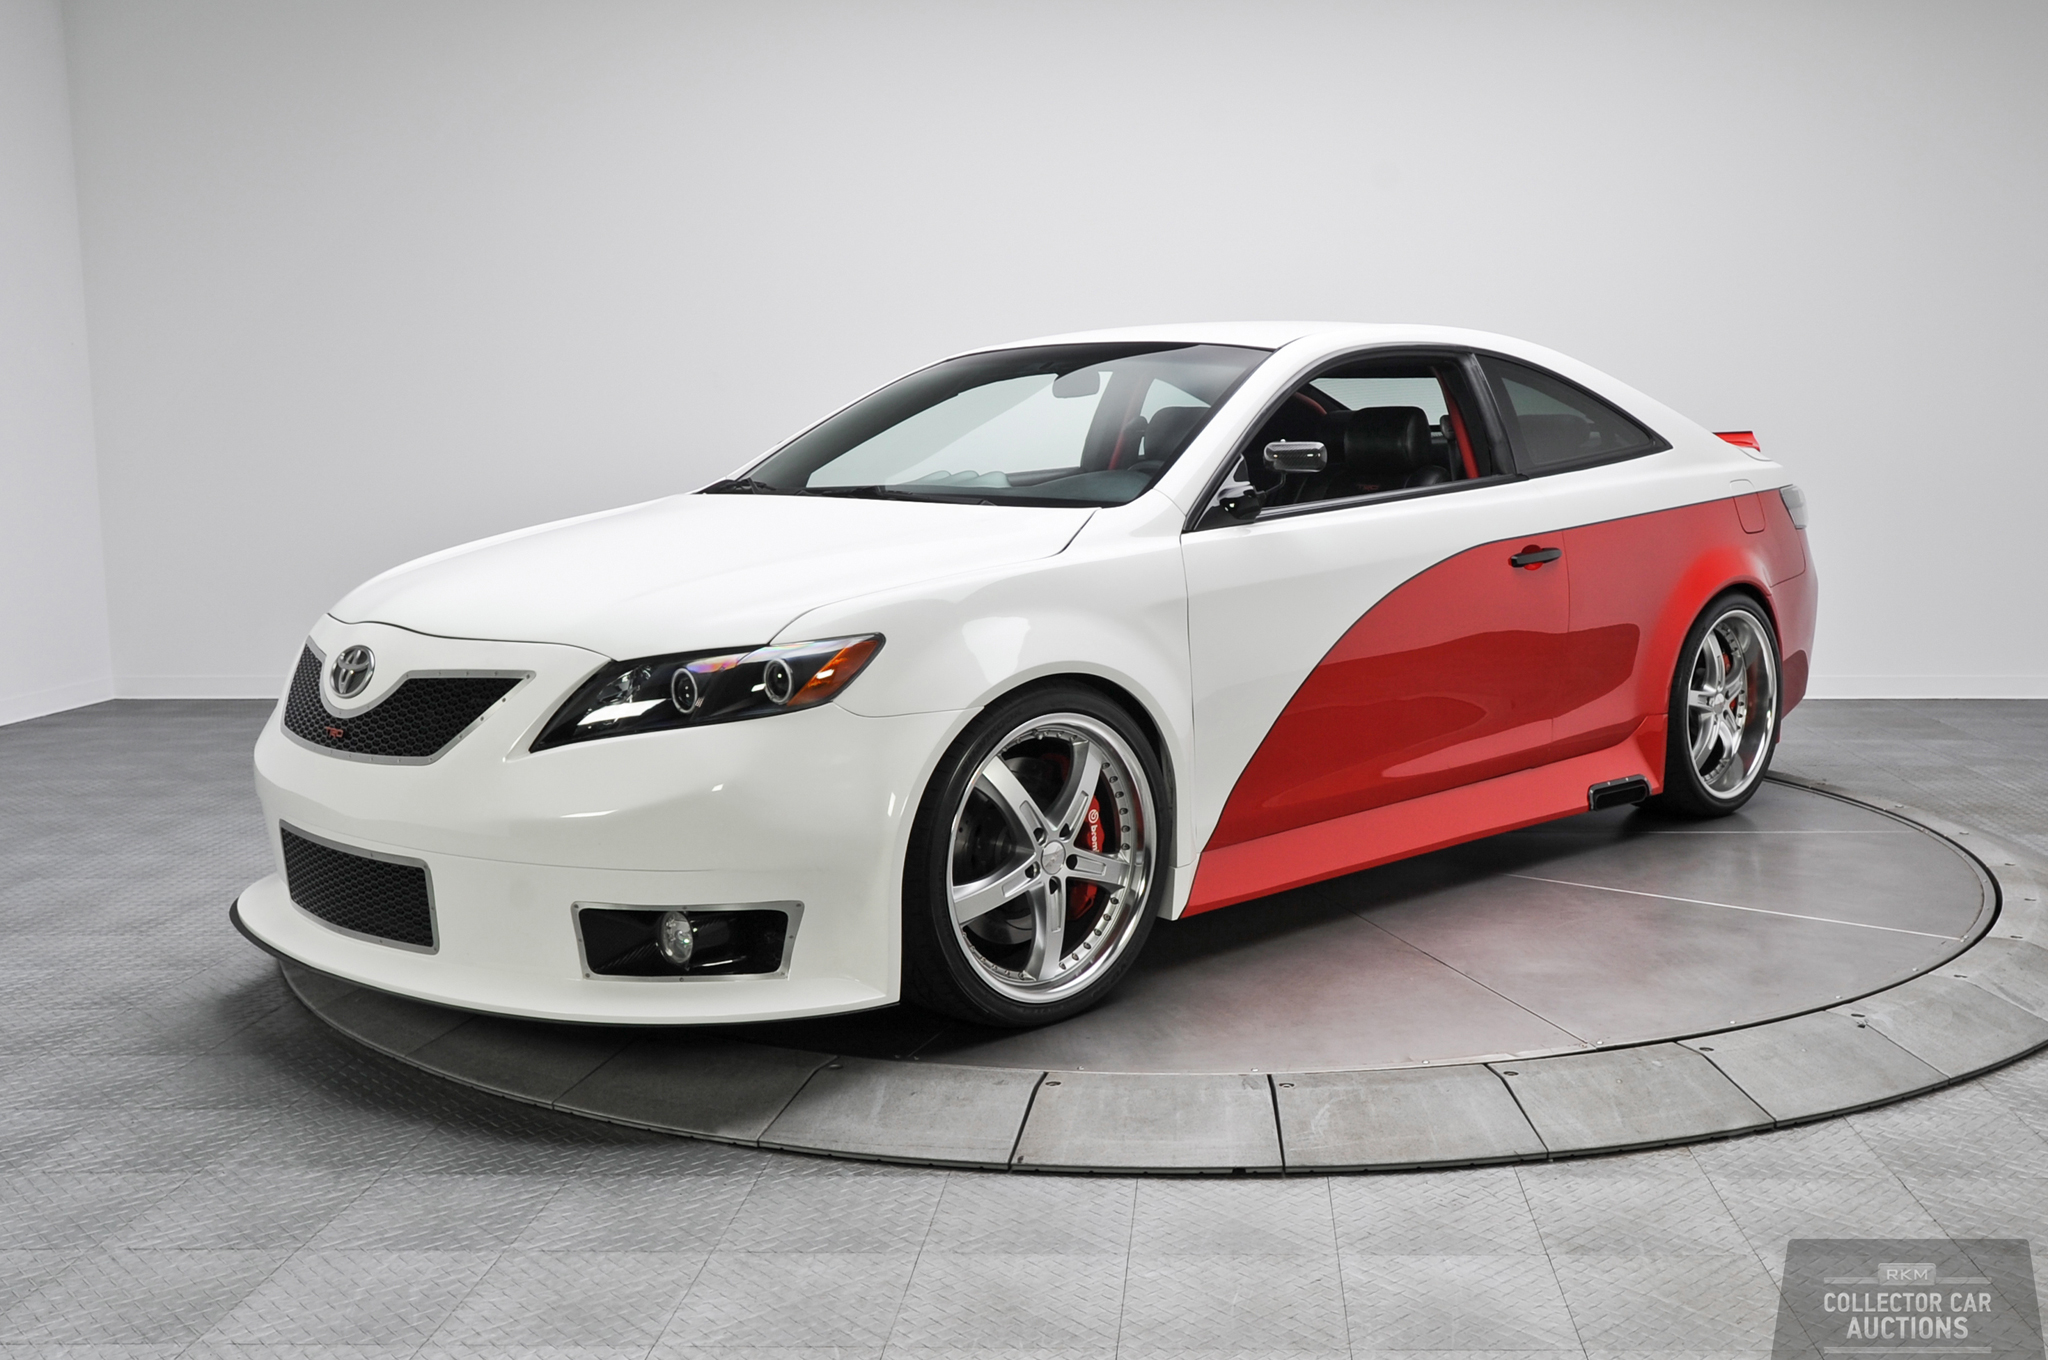 Rwd 680 Hp One Off 2006 Toyota Camry Coupe Heading To Auction